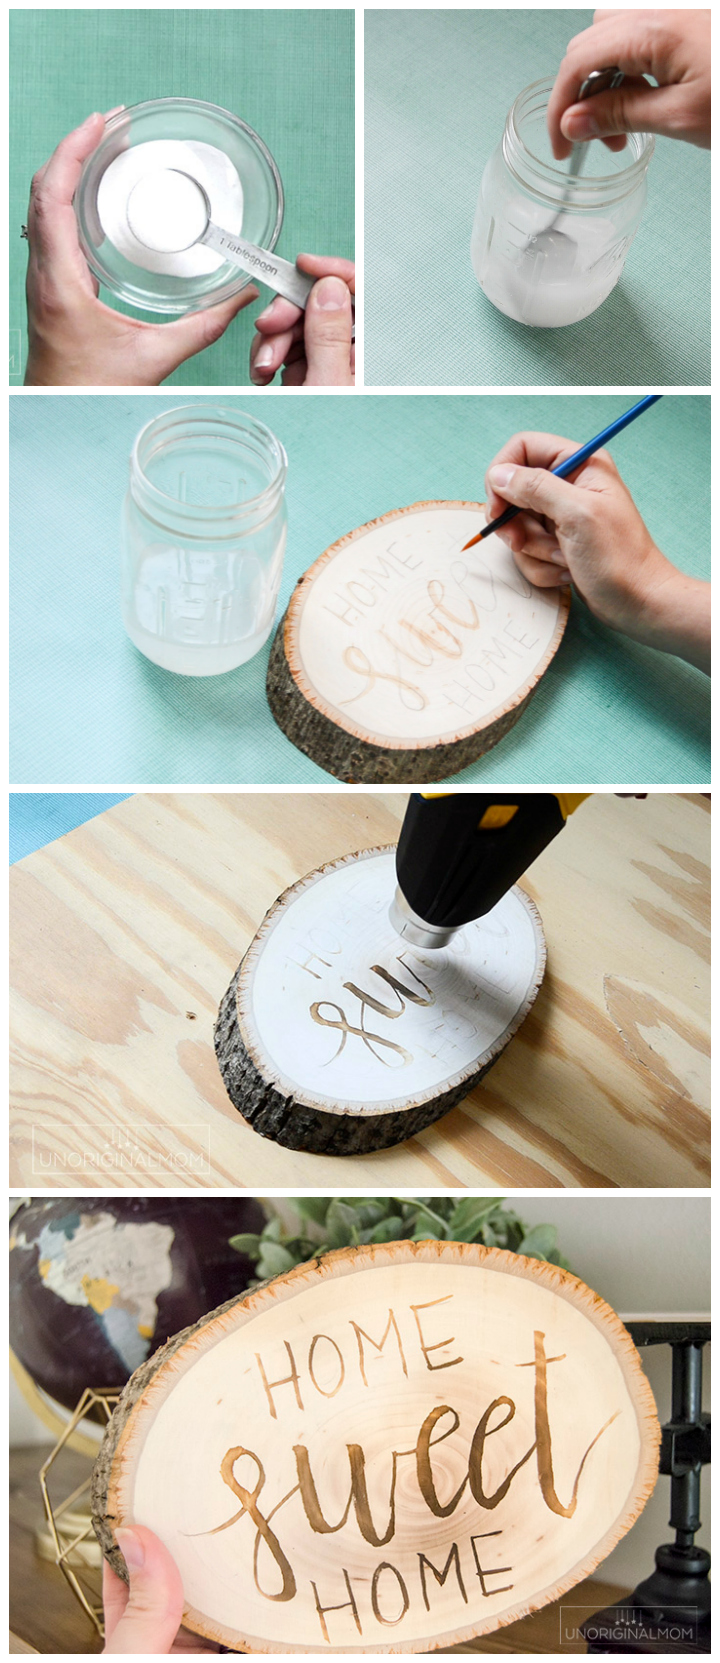 Wood burning with ammonium chloride - a really neat technique to brand wood without a brand or a wood burning tool! So many possibilities! | wood burning | wood branding | rustic crafts | wood burning crafts | wood burning tutorial